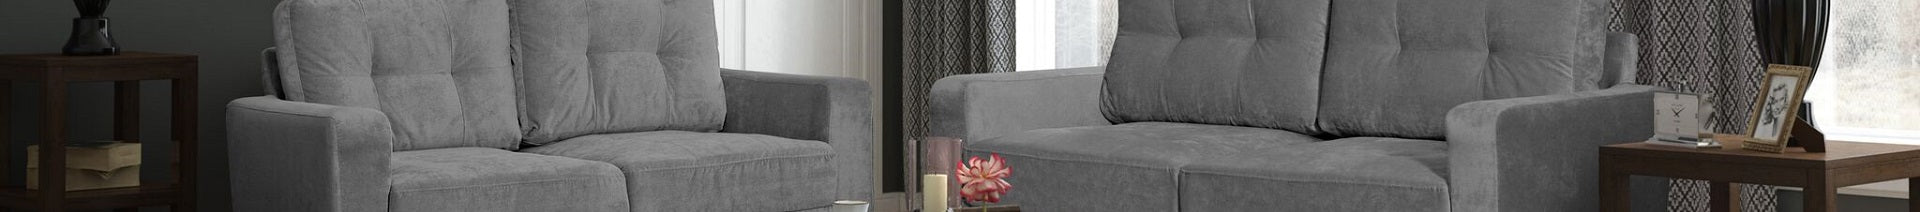 Sofas Under £400 at Sofas Direct UK